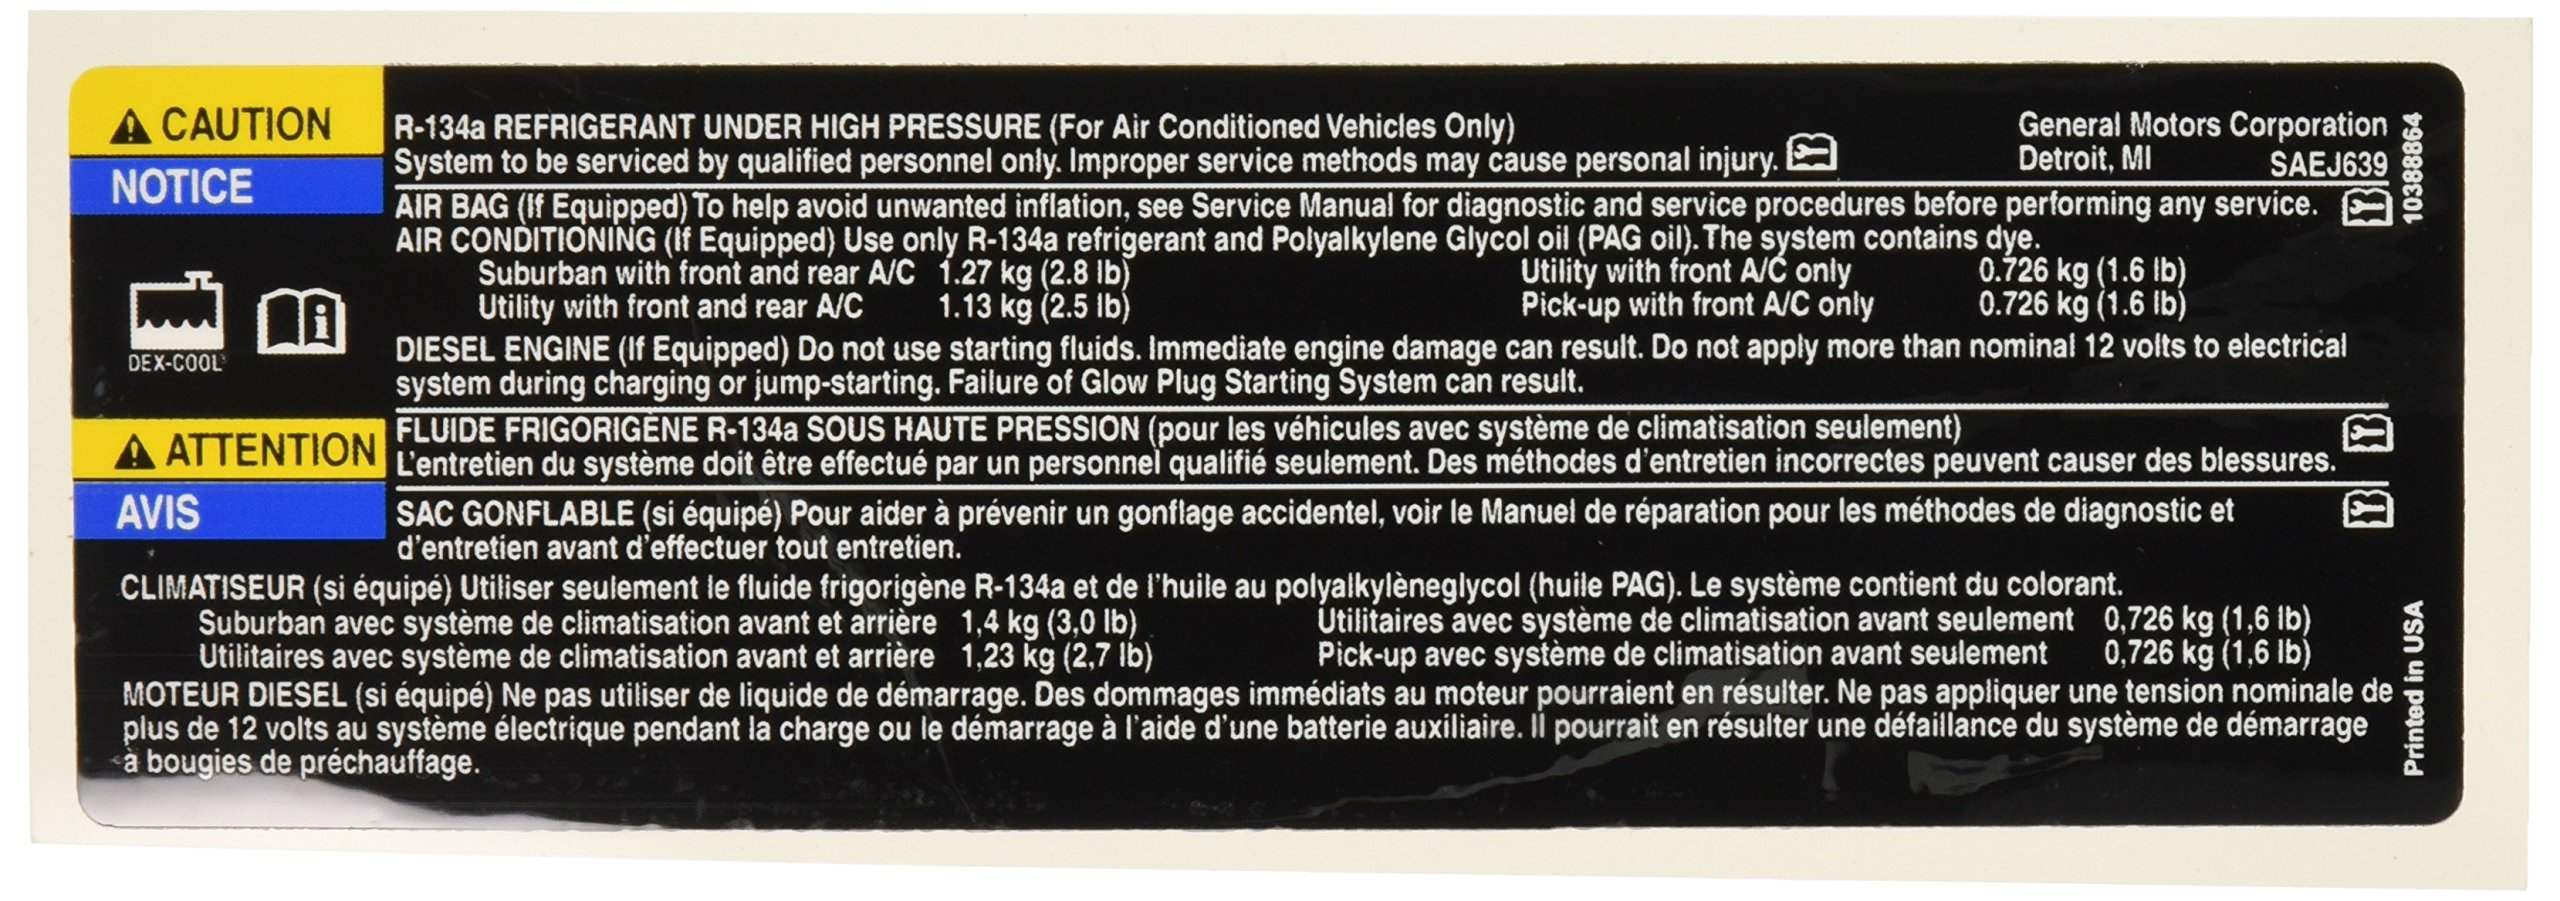 Genuine GM 10388864 Air Conditioning Refrigerant Warning Label